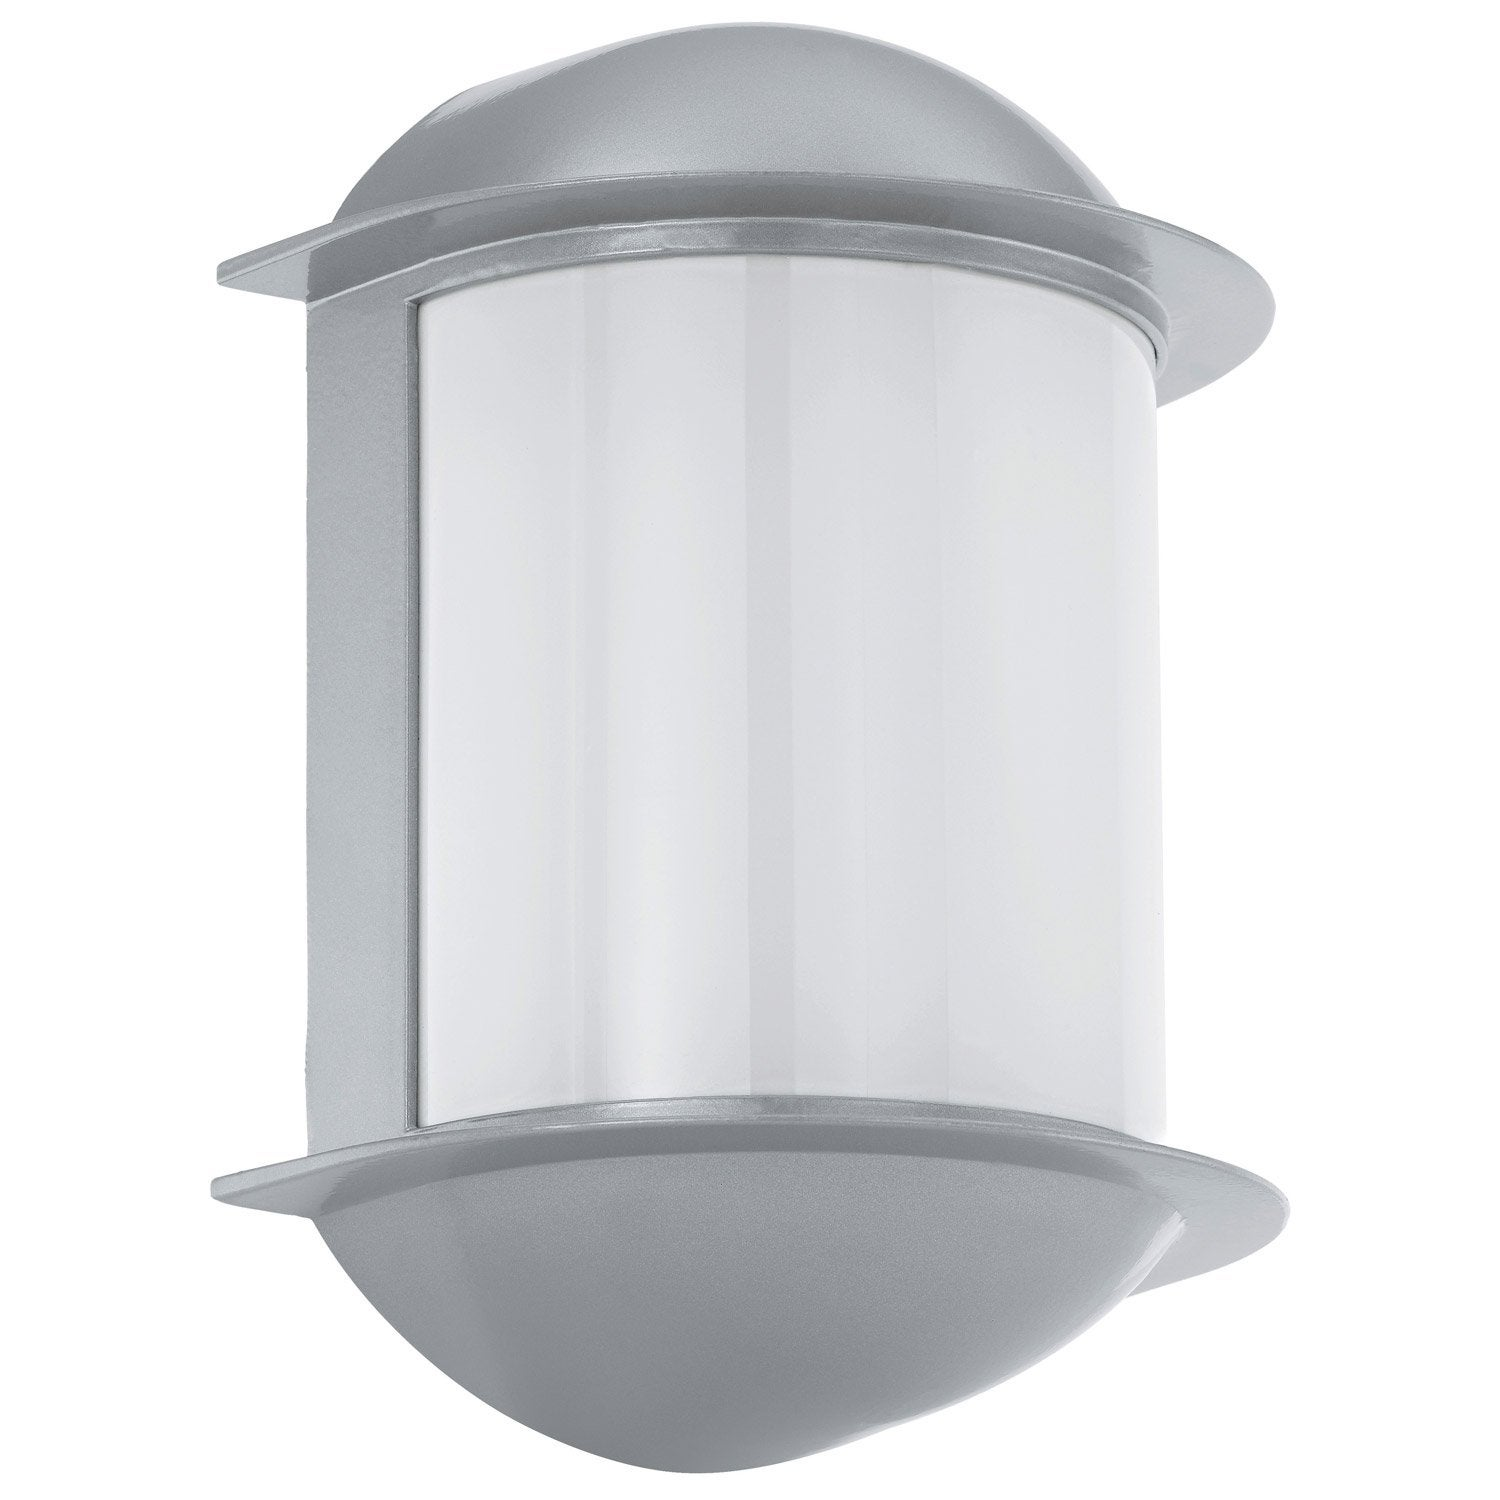 Applique ext rieure isoba gx53 500 lm gris eglo leroy - Guirlandes lumineuses exterieures leroy merlin ...